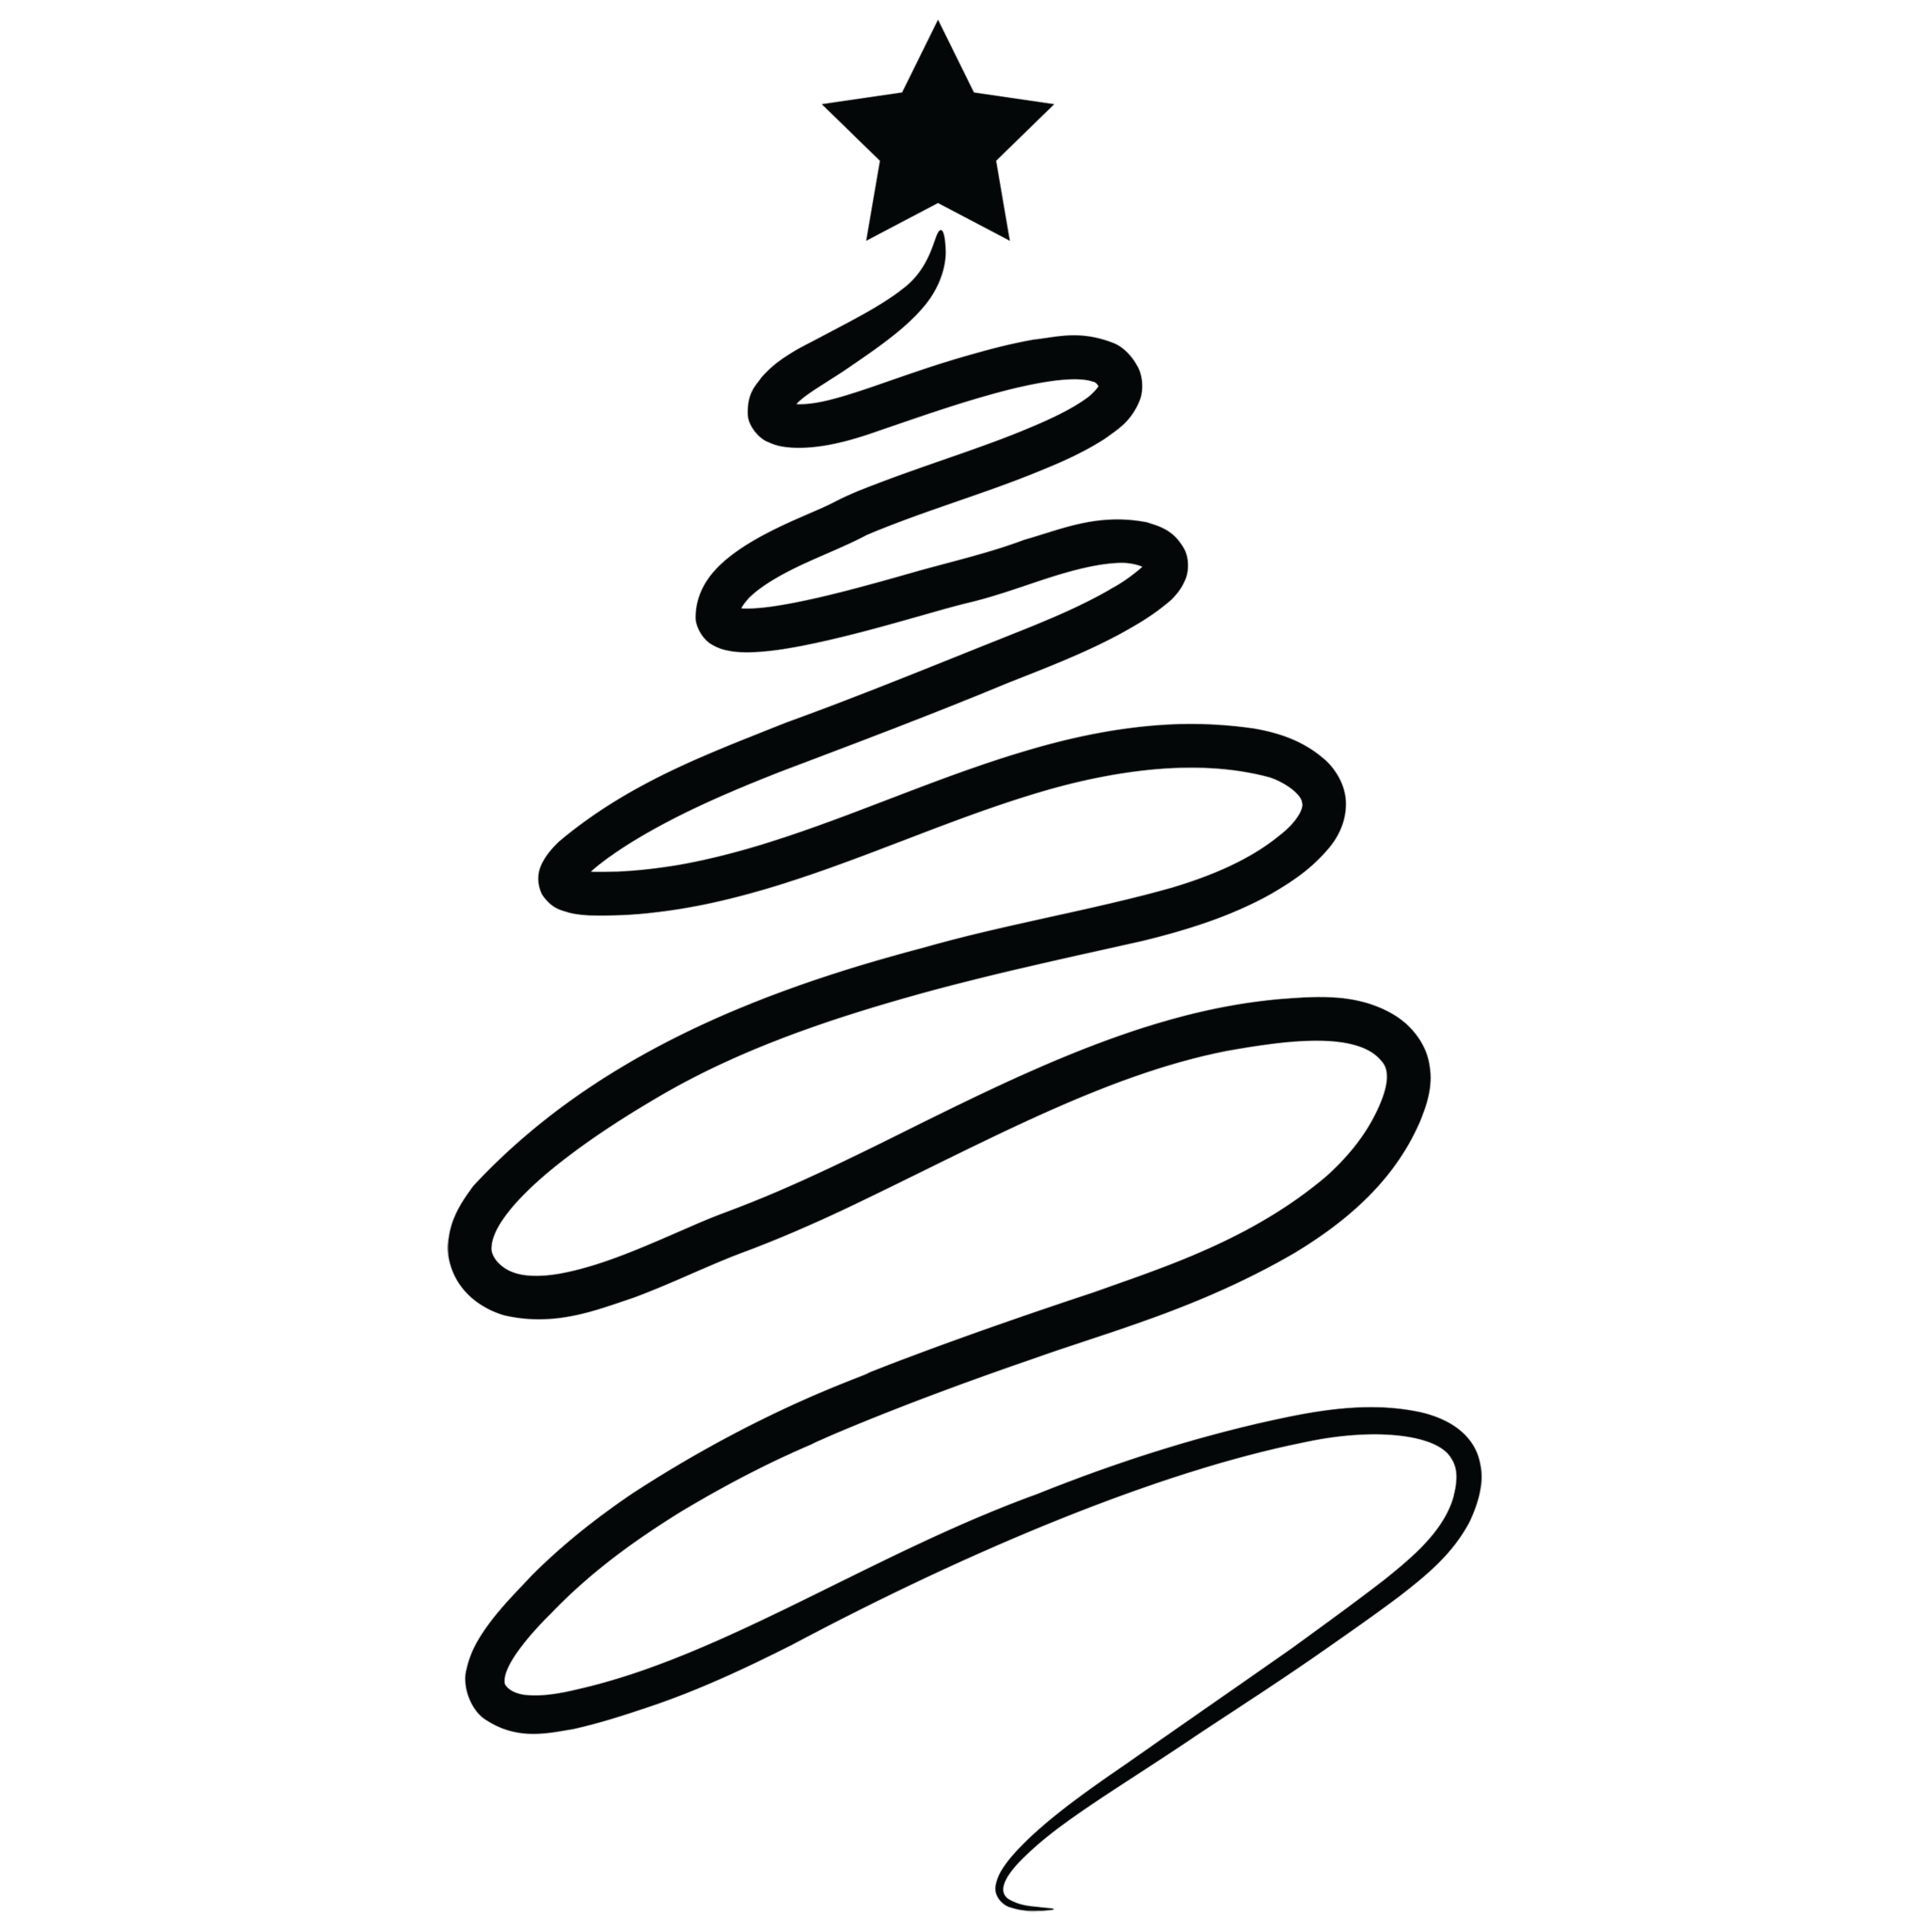 Christmas party clipart black and white jpg black and white library Christmas Swirl Silhouette Clipart jpg black and white library